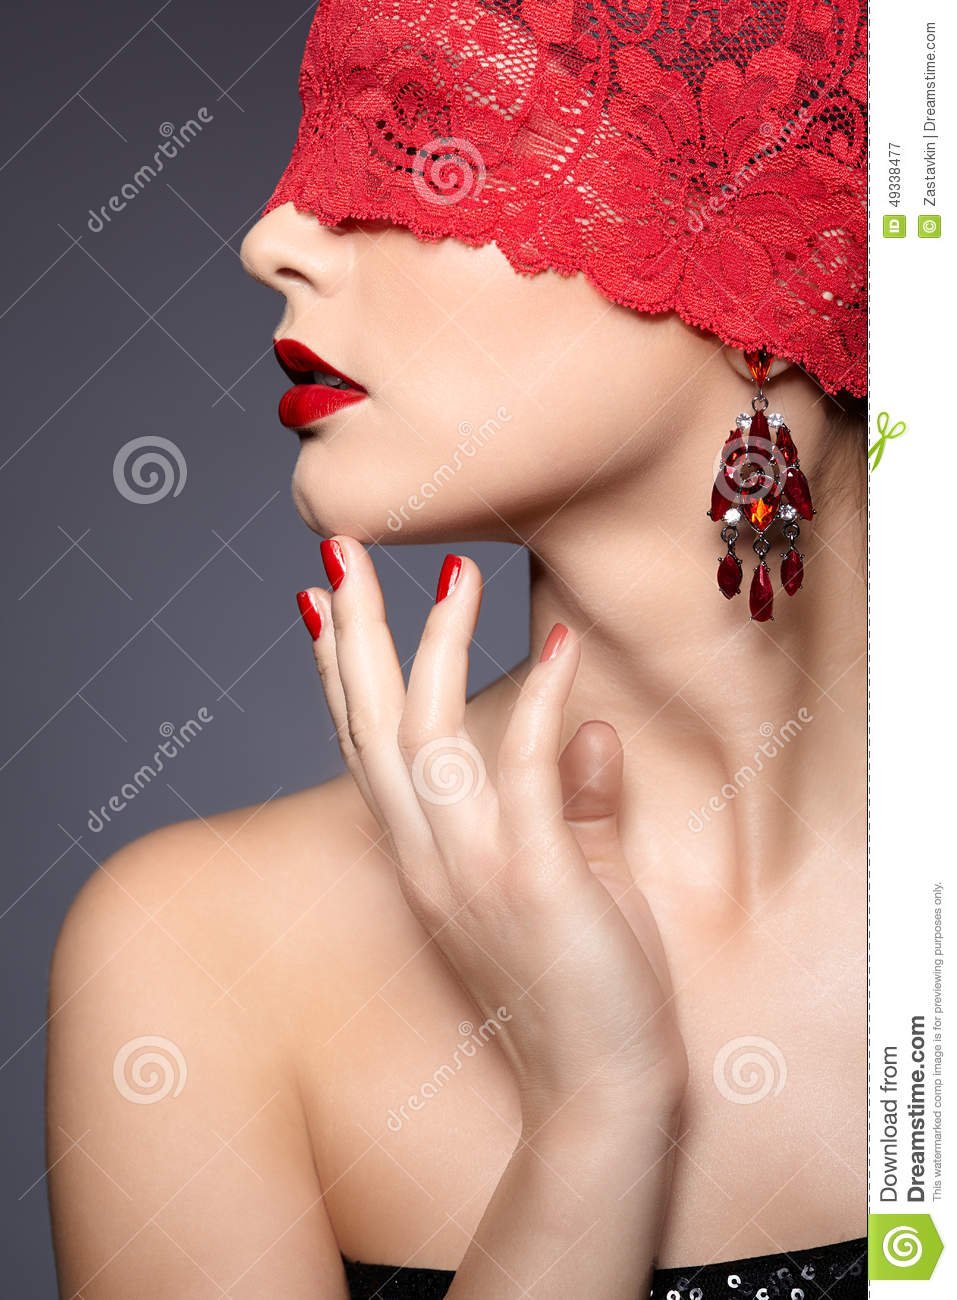 Woman with red bandage